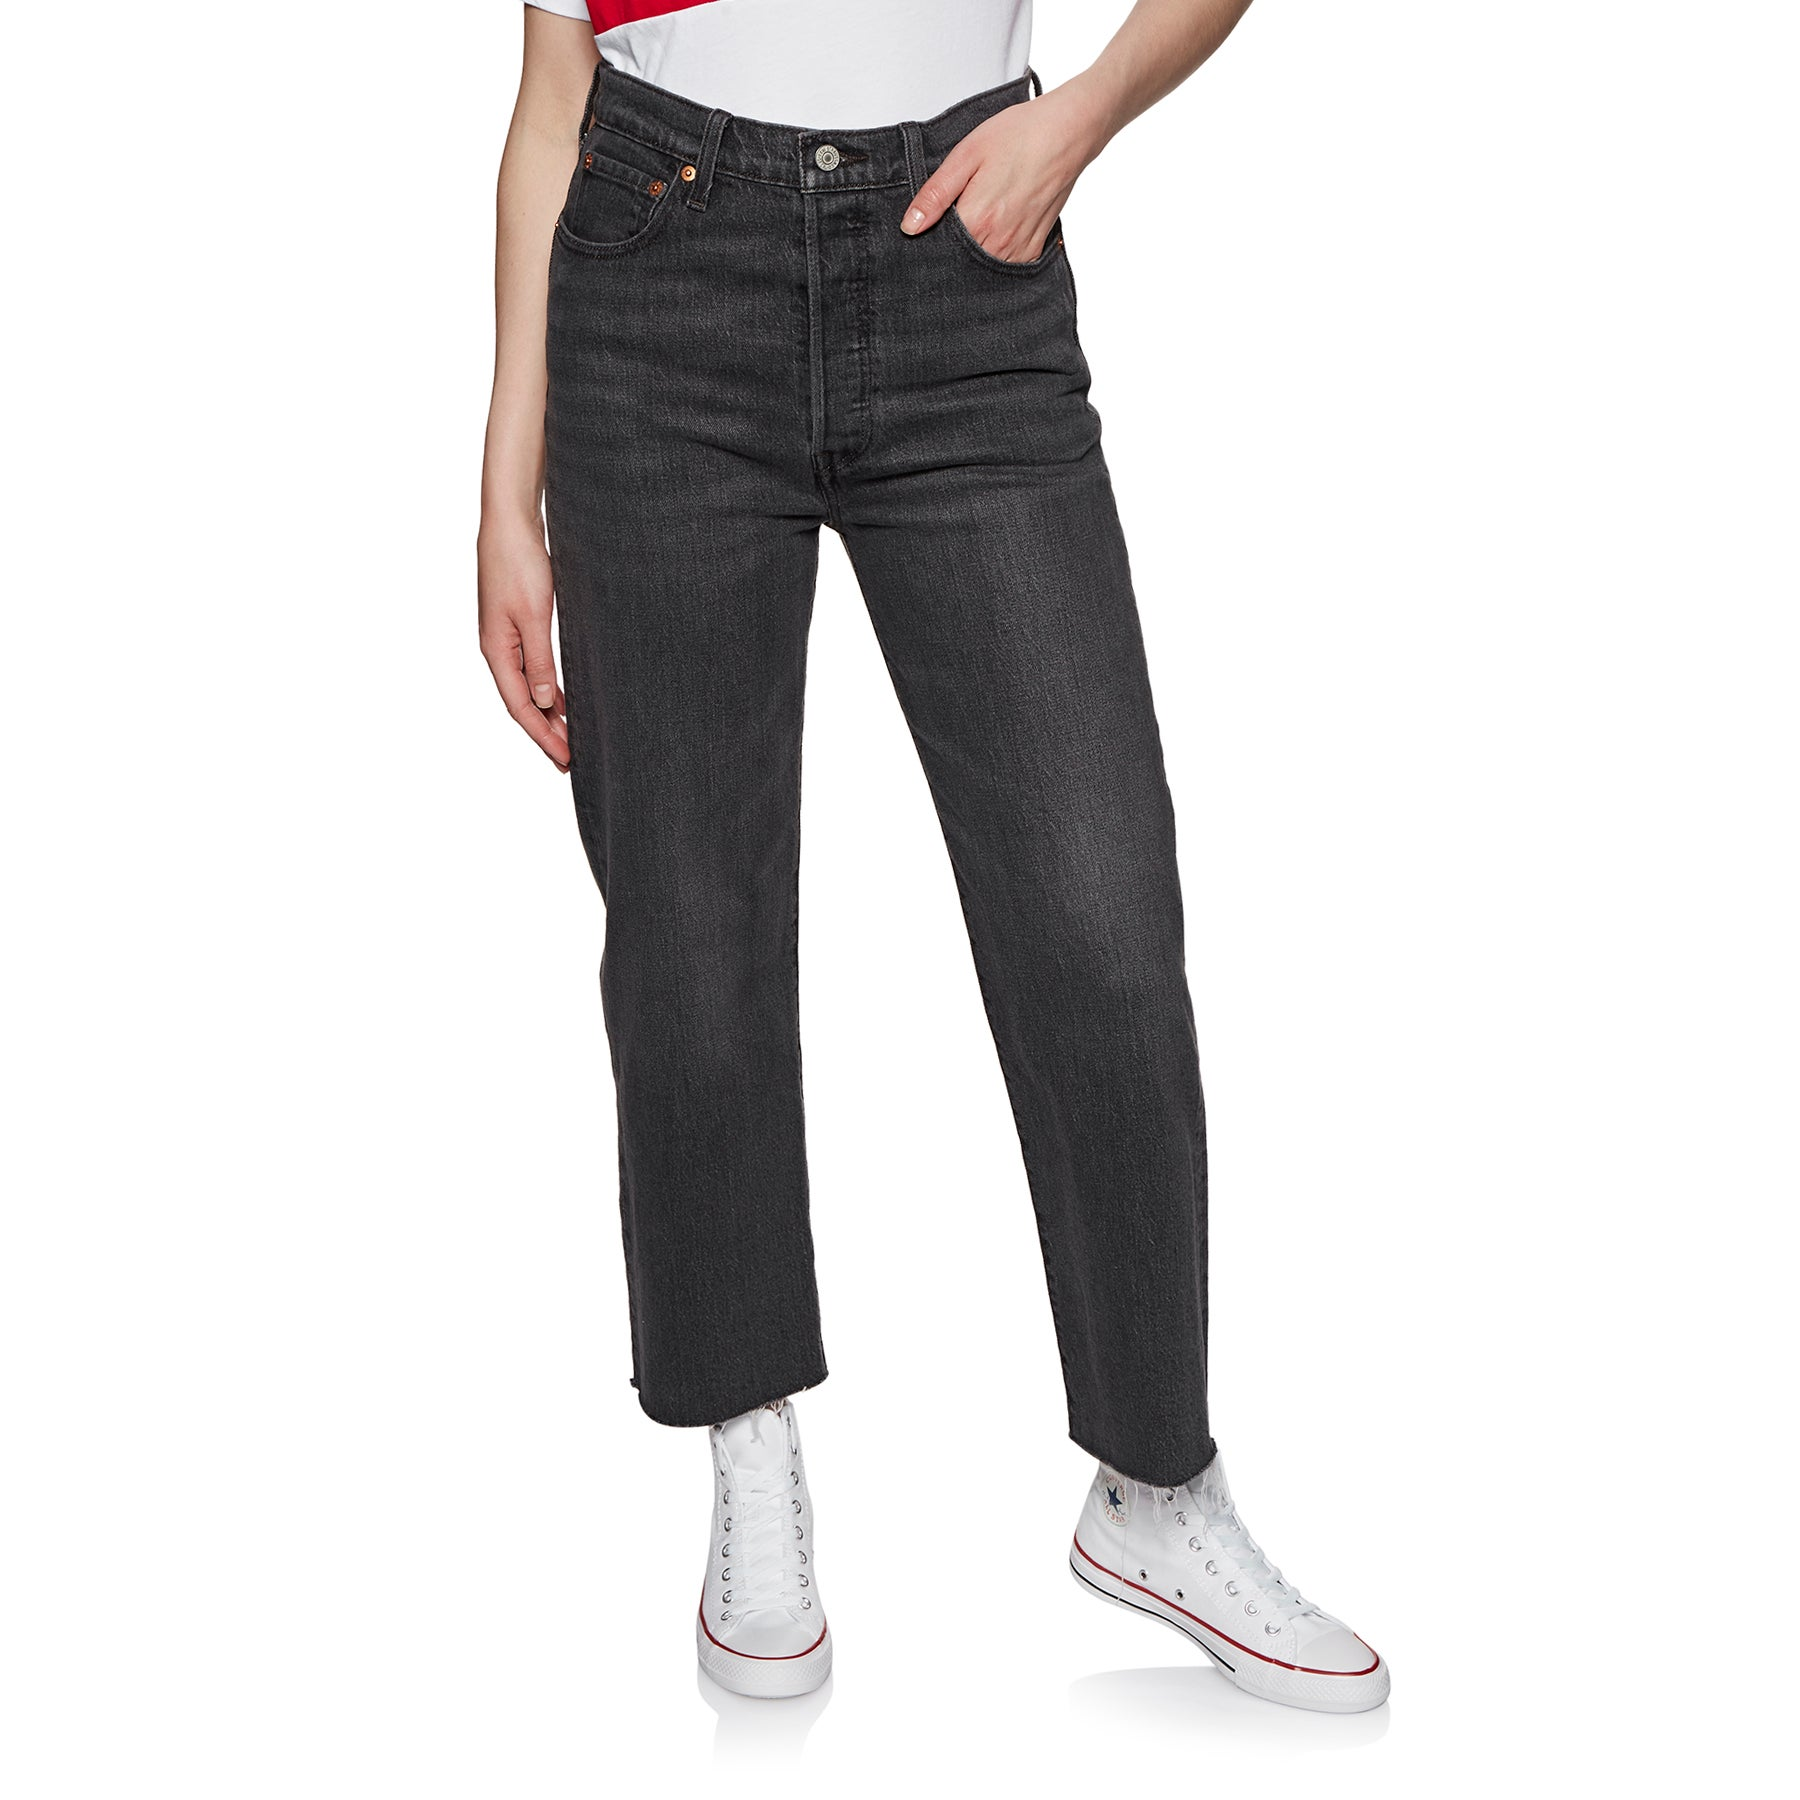 Jeans Femme Levis Ribcage - You Only Live Once